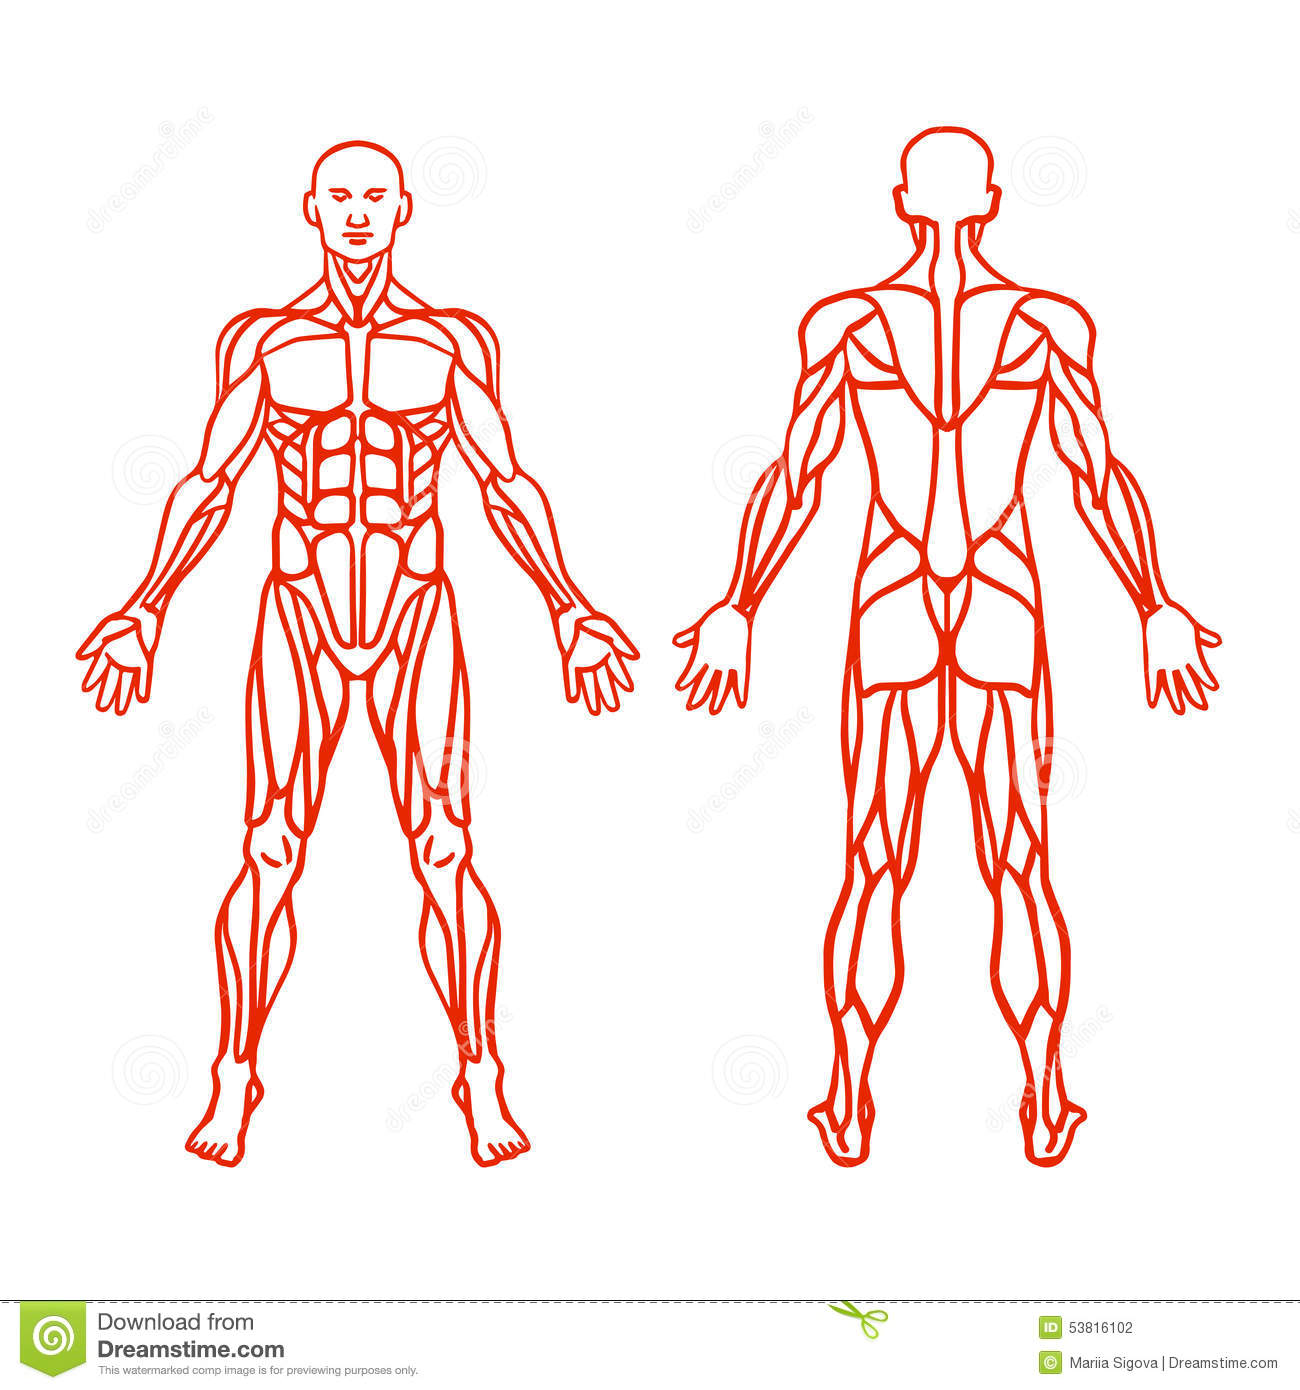 Anatomy Of Male Muscular System Exercise And Muscle Guide Stock